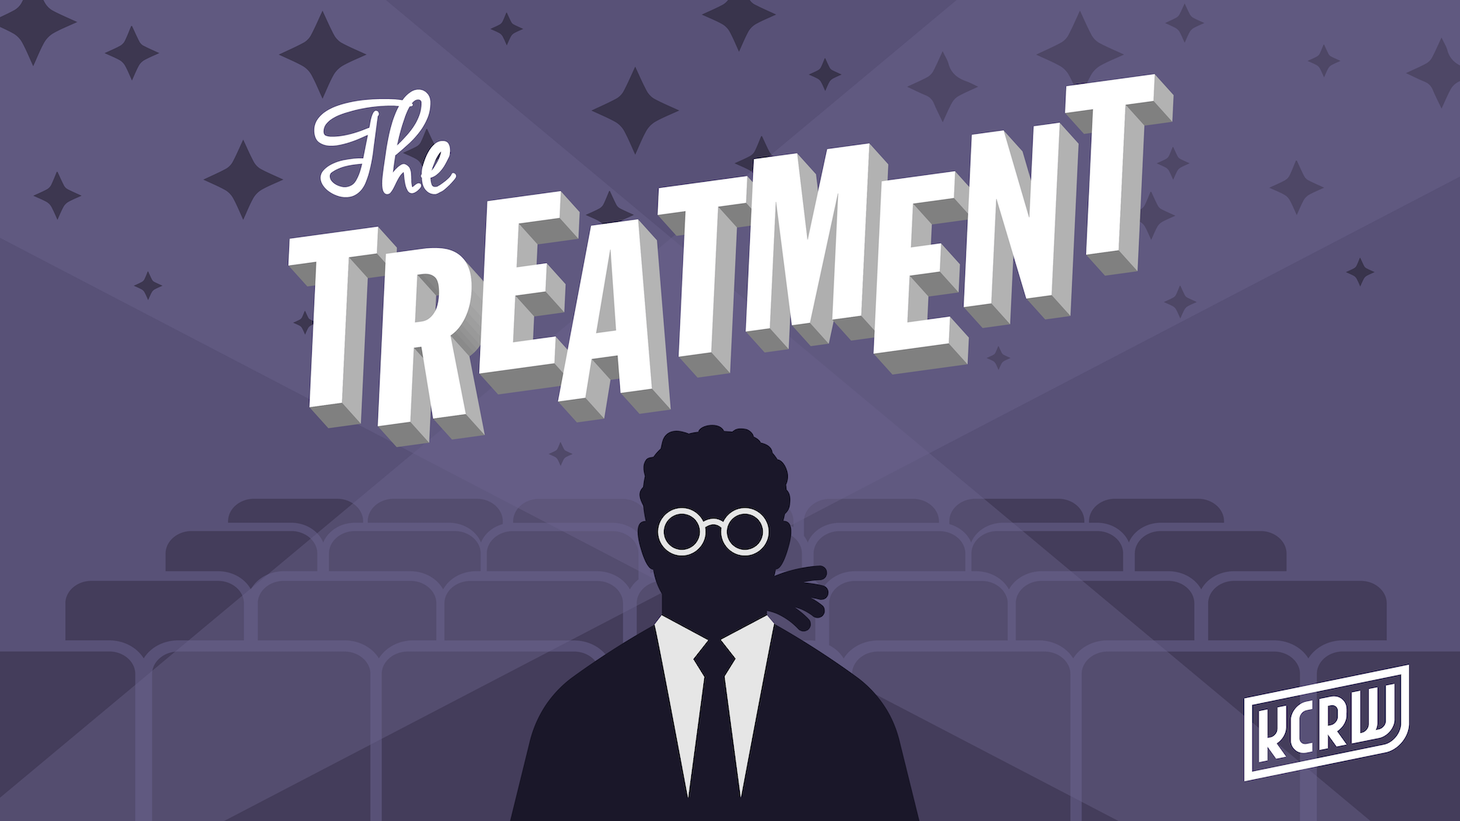 Television month continues on The Treatment, aS Elvis Mitchell hosts Ilene Chaiken, creator and executive producer of The L Word, Showtime's dramatic series about the lives of lesbians in Los Angeles.